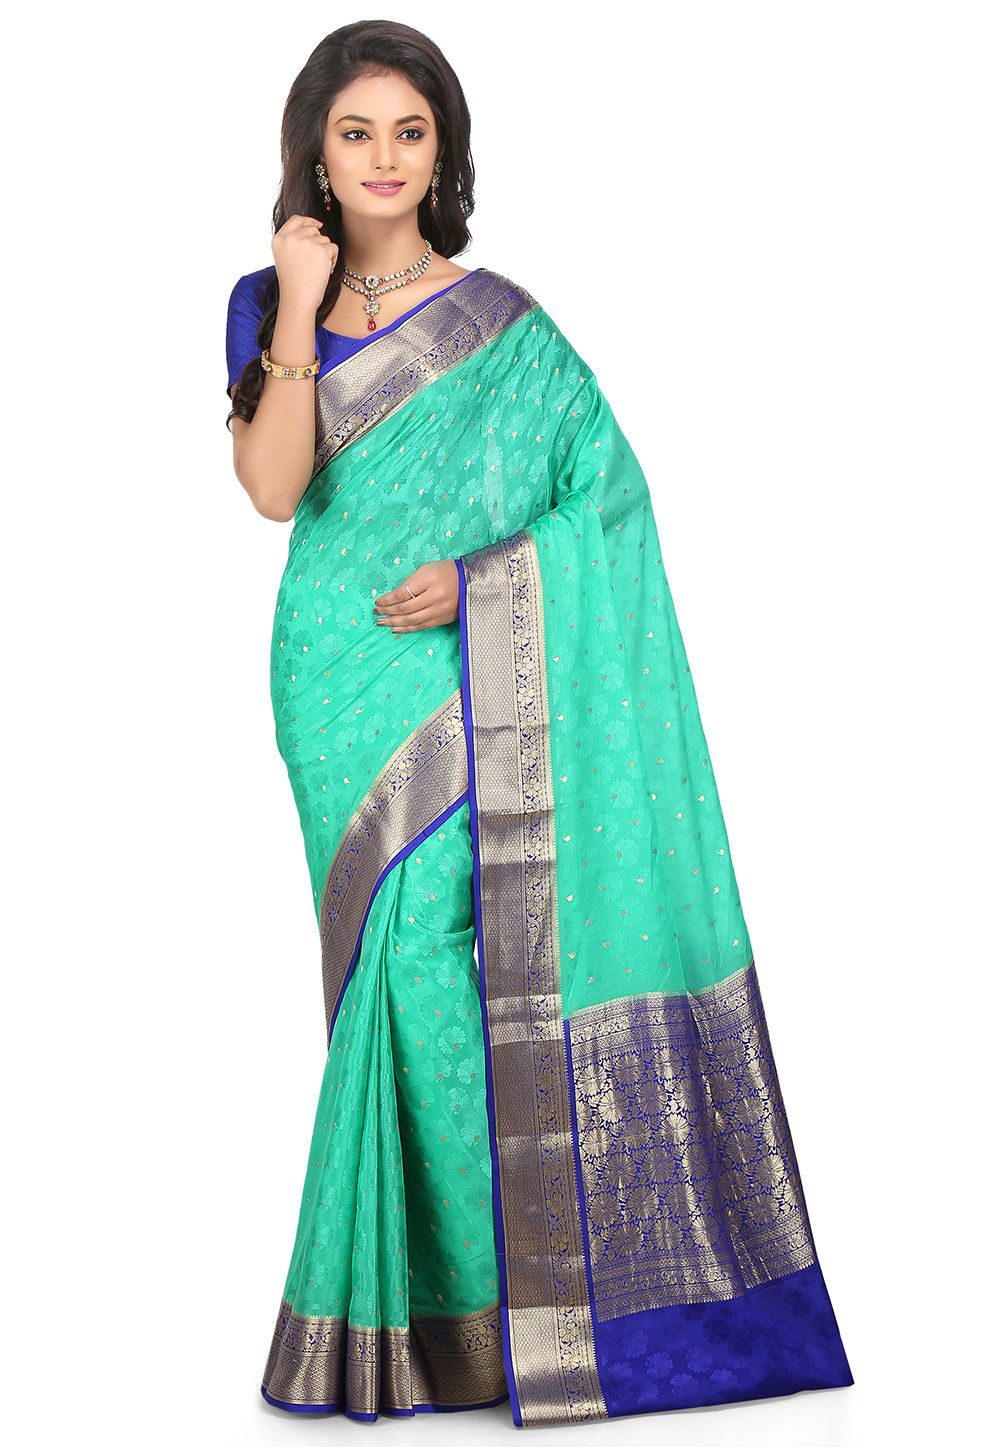 798603ab56 ... Woven Pure Mysore Silk Saree in Turquoise. Zoom